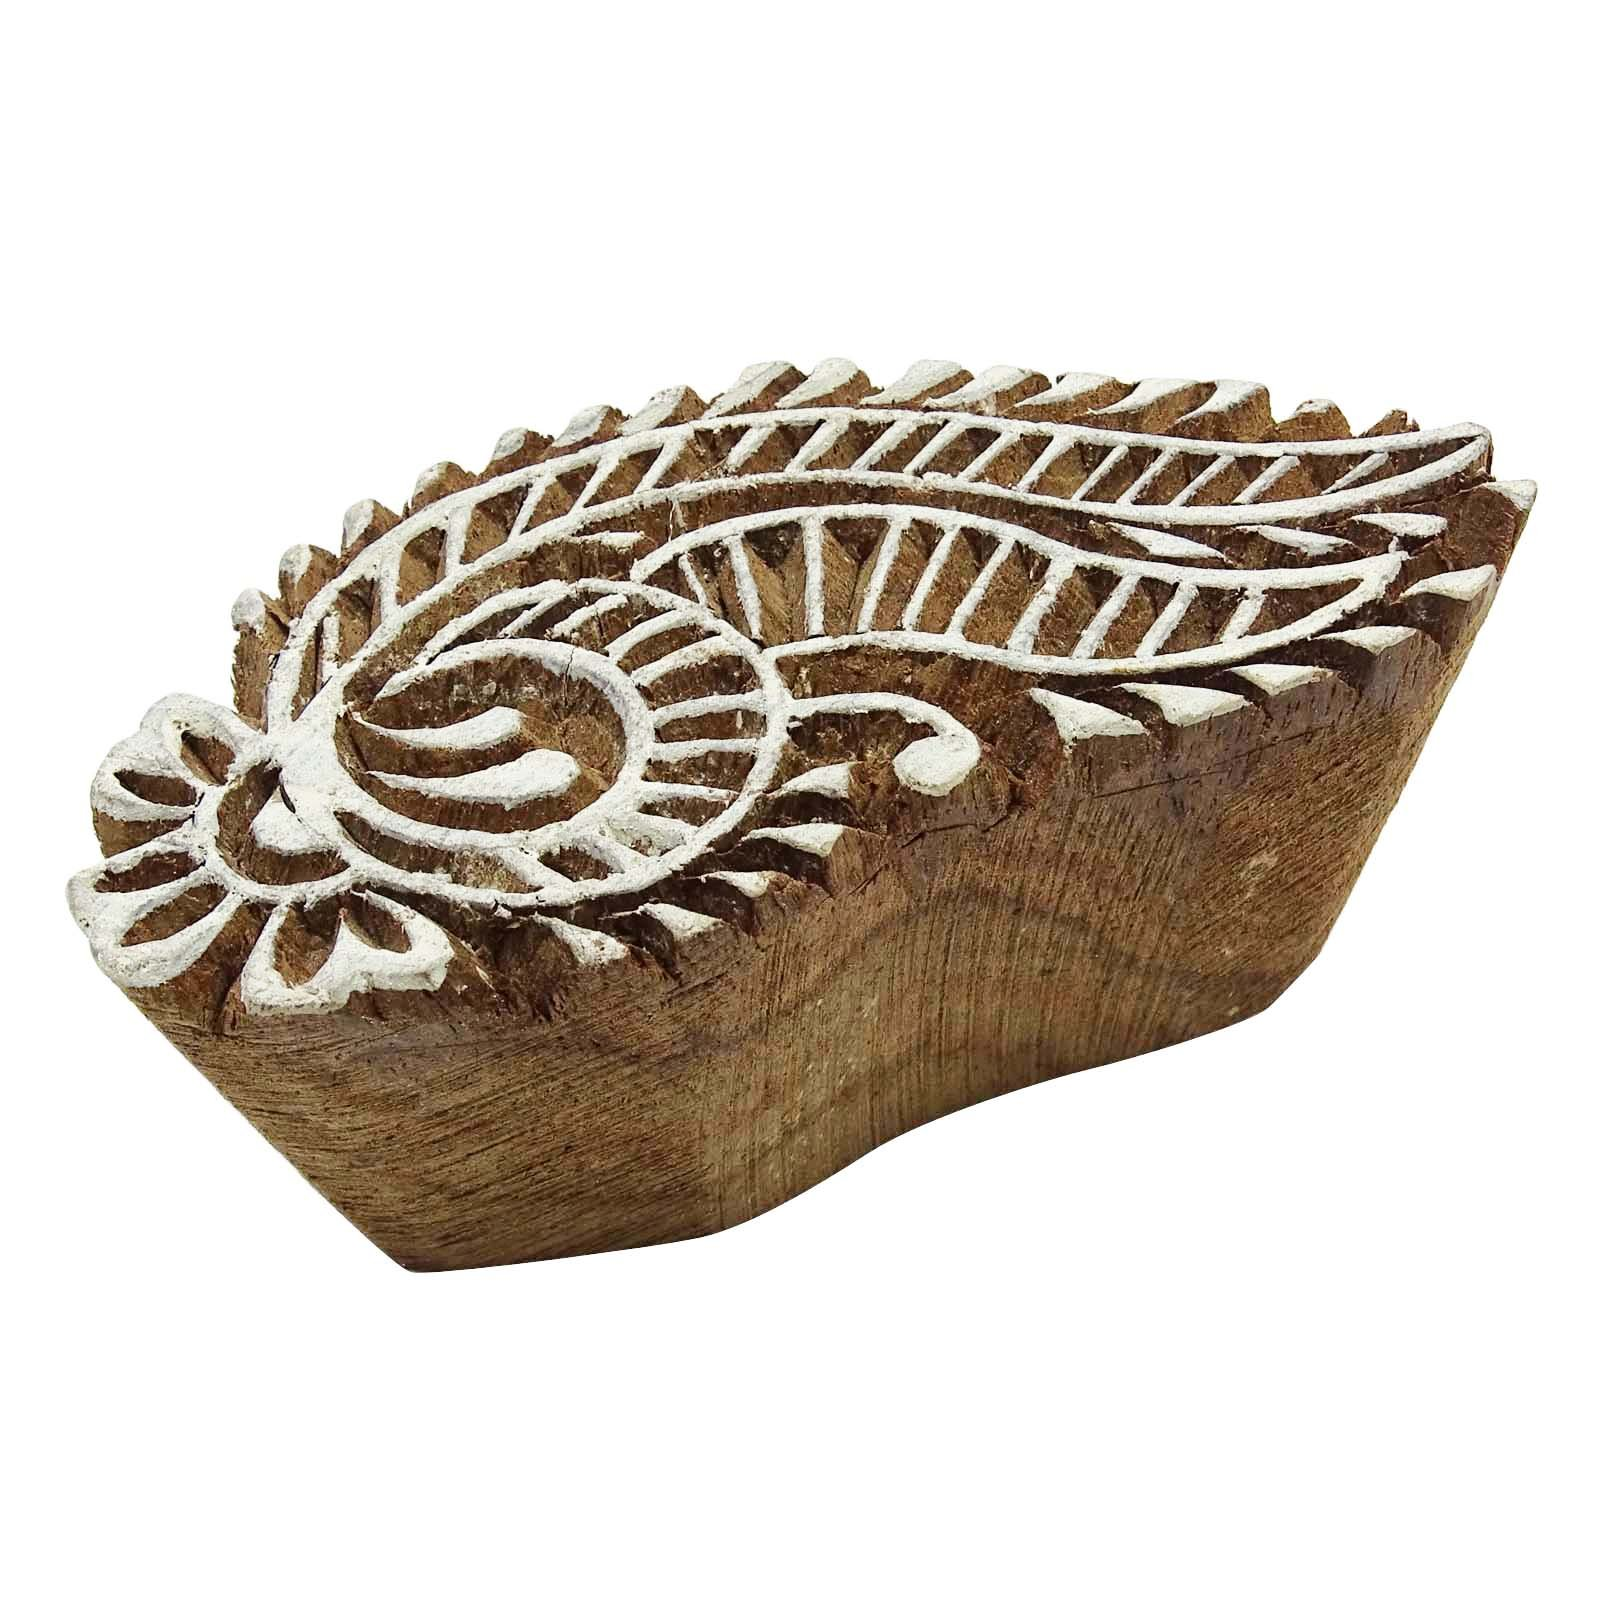 Paisley Border Stamp Textile Printing Block Brown Handcarved Stamp Wooden by Knitwit (Image #4)